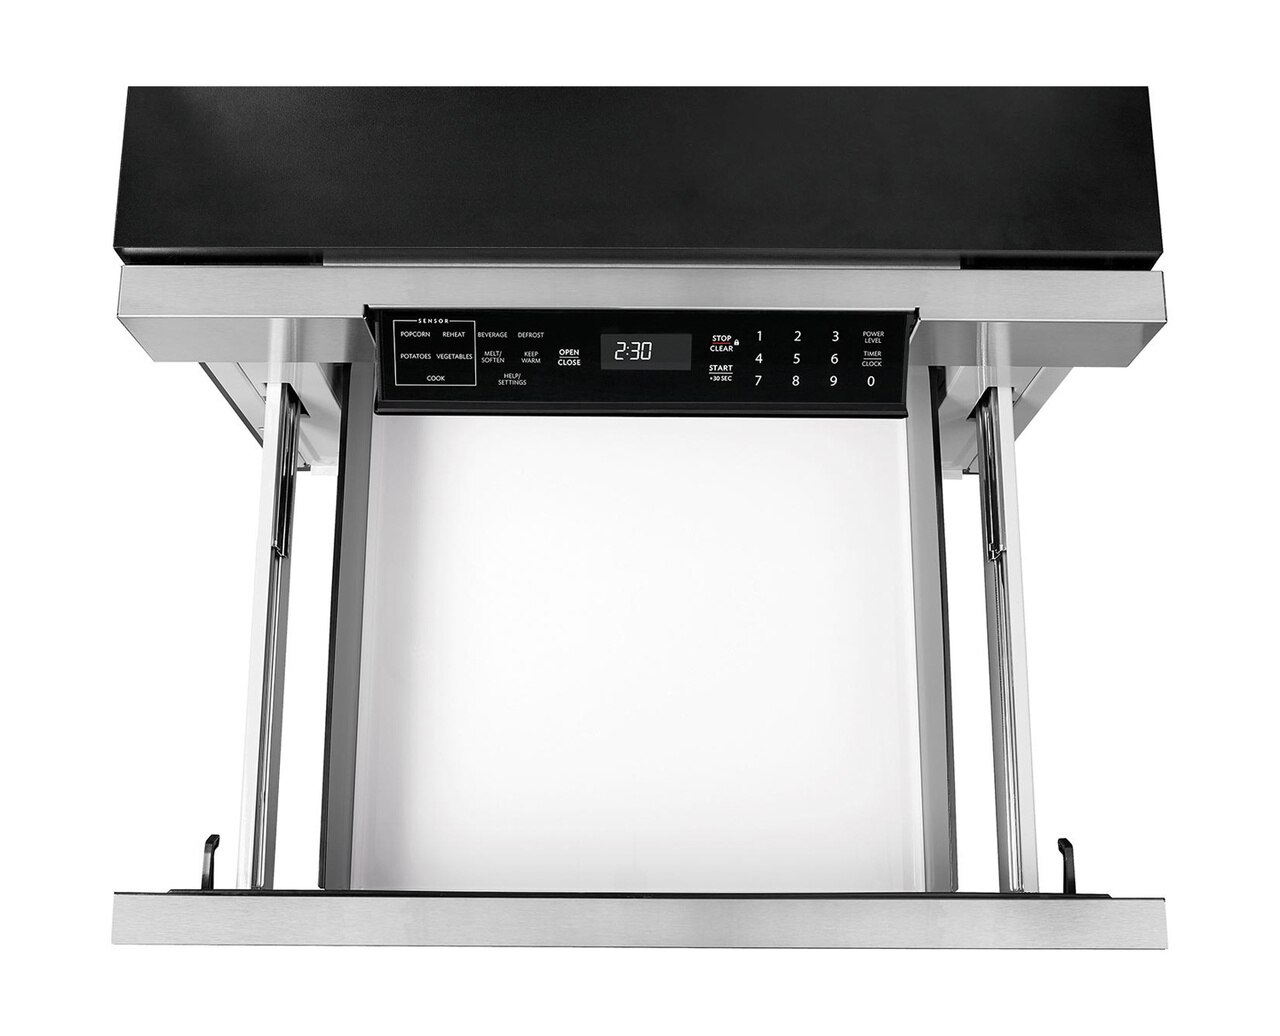 30-inch Sharp Microwave Drawer (SMD3070AS) – overhead view with drawer open